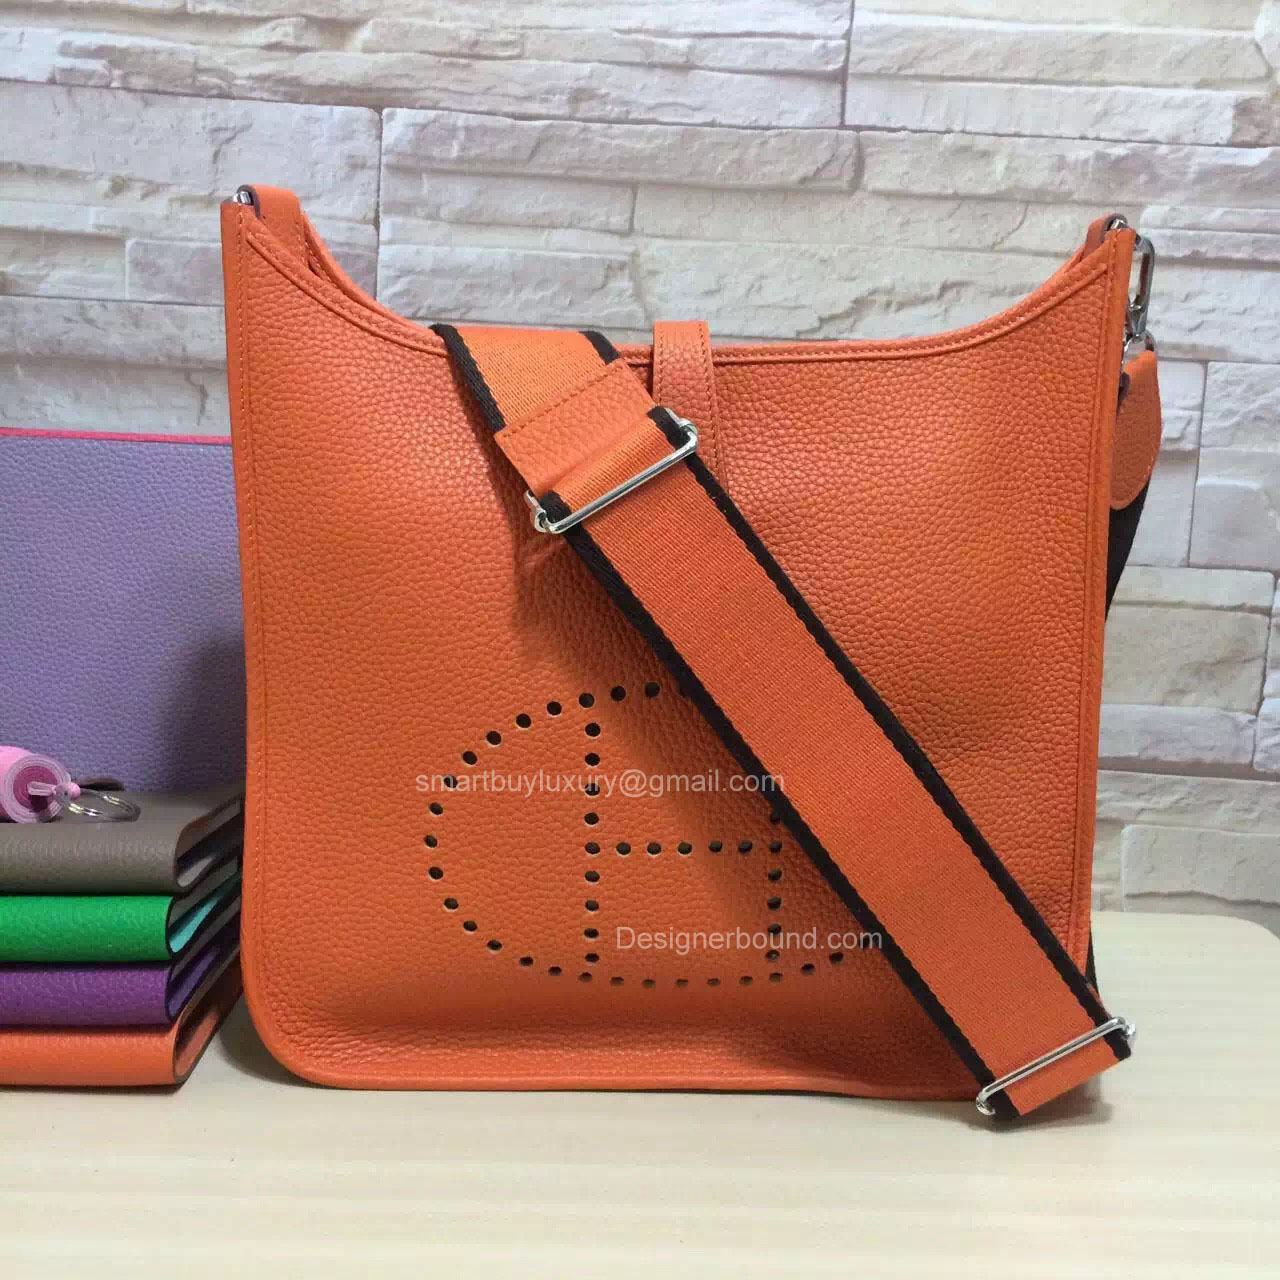 Hermes Evelyne III Bag PM in Orange Togo Leather